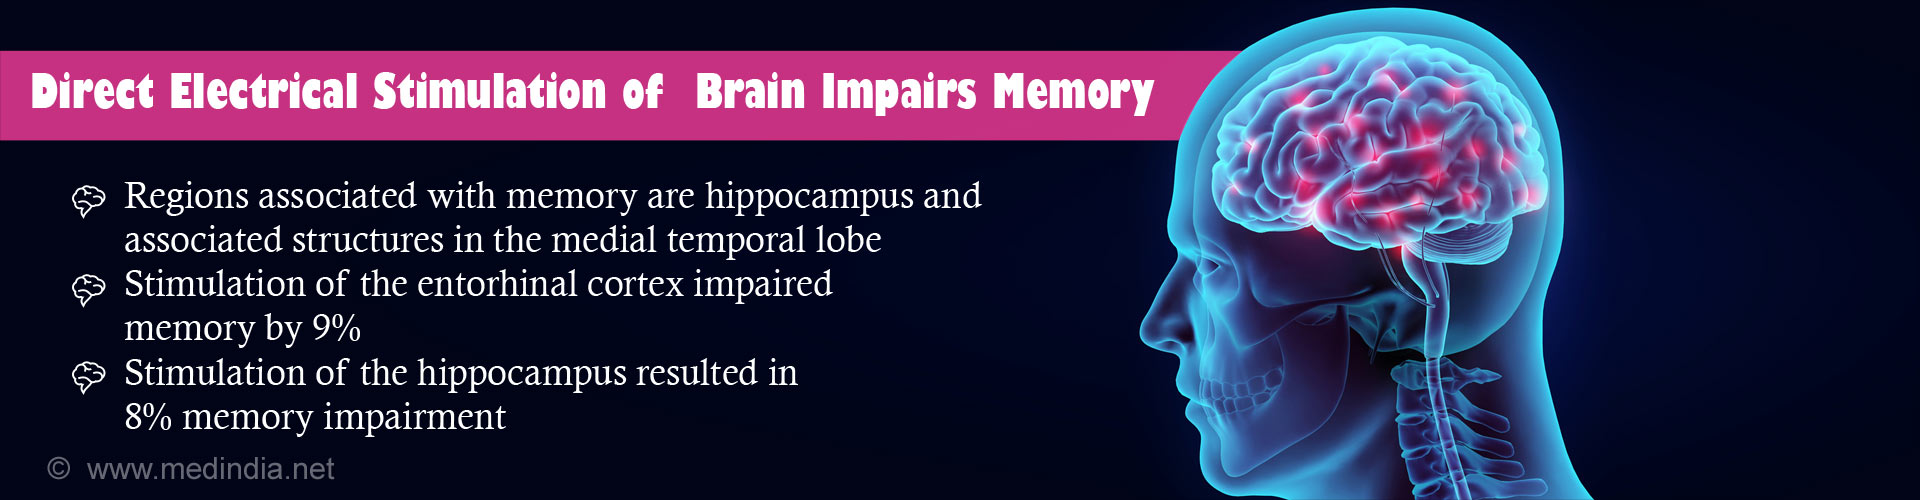 Direct Electrical Stimulation of The Brain does not Enhance Memory